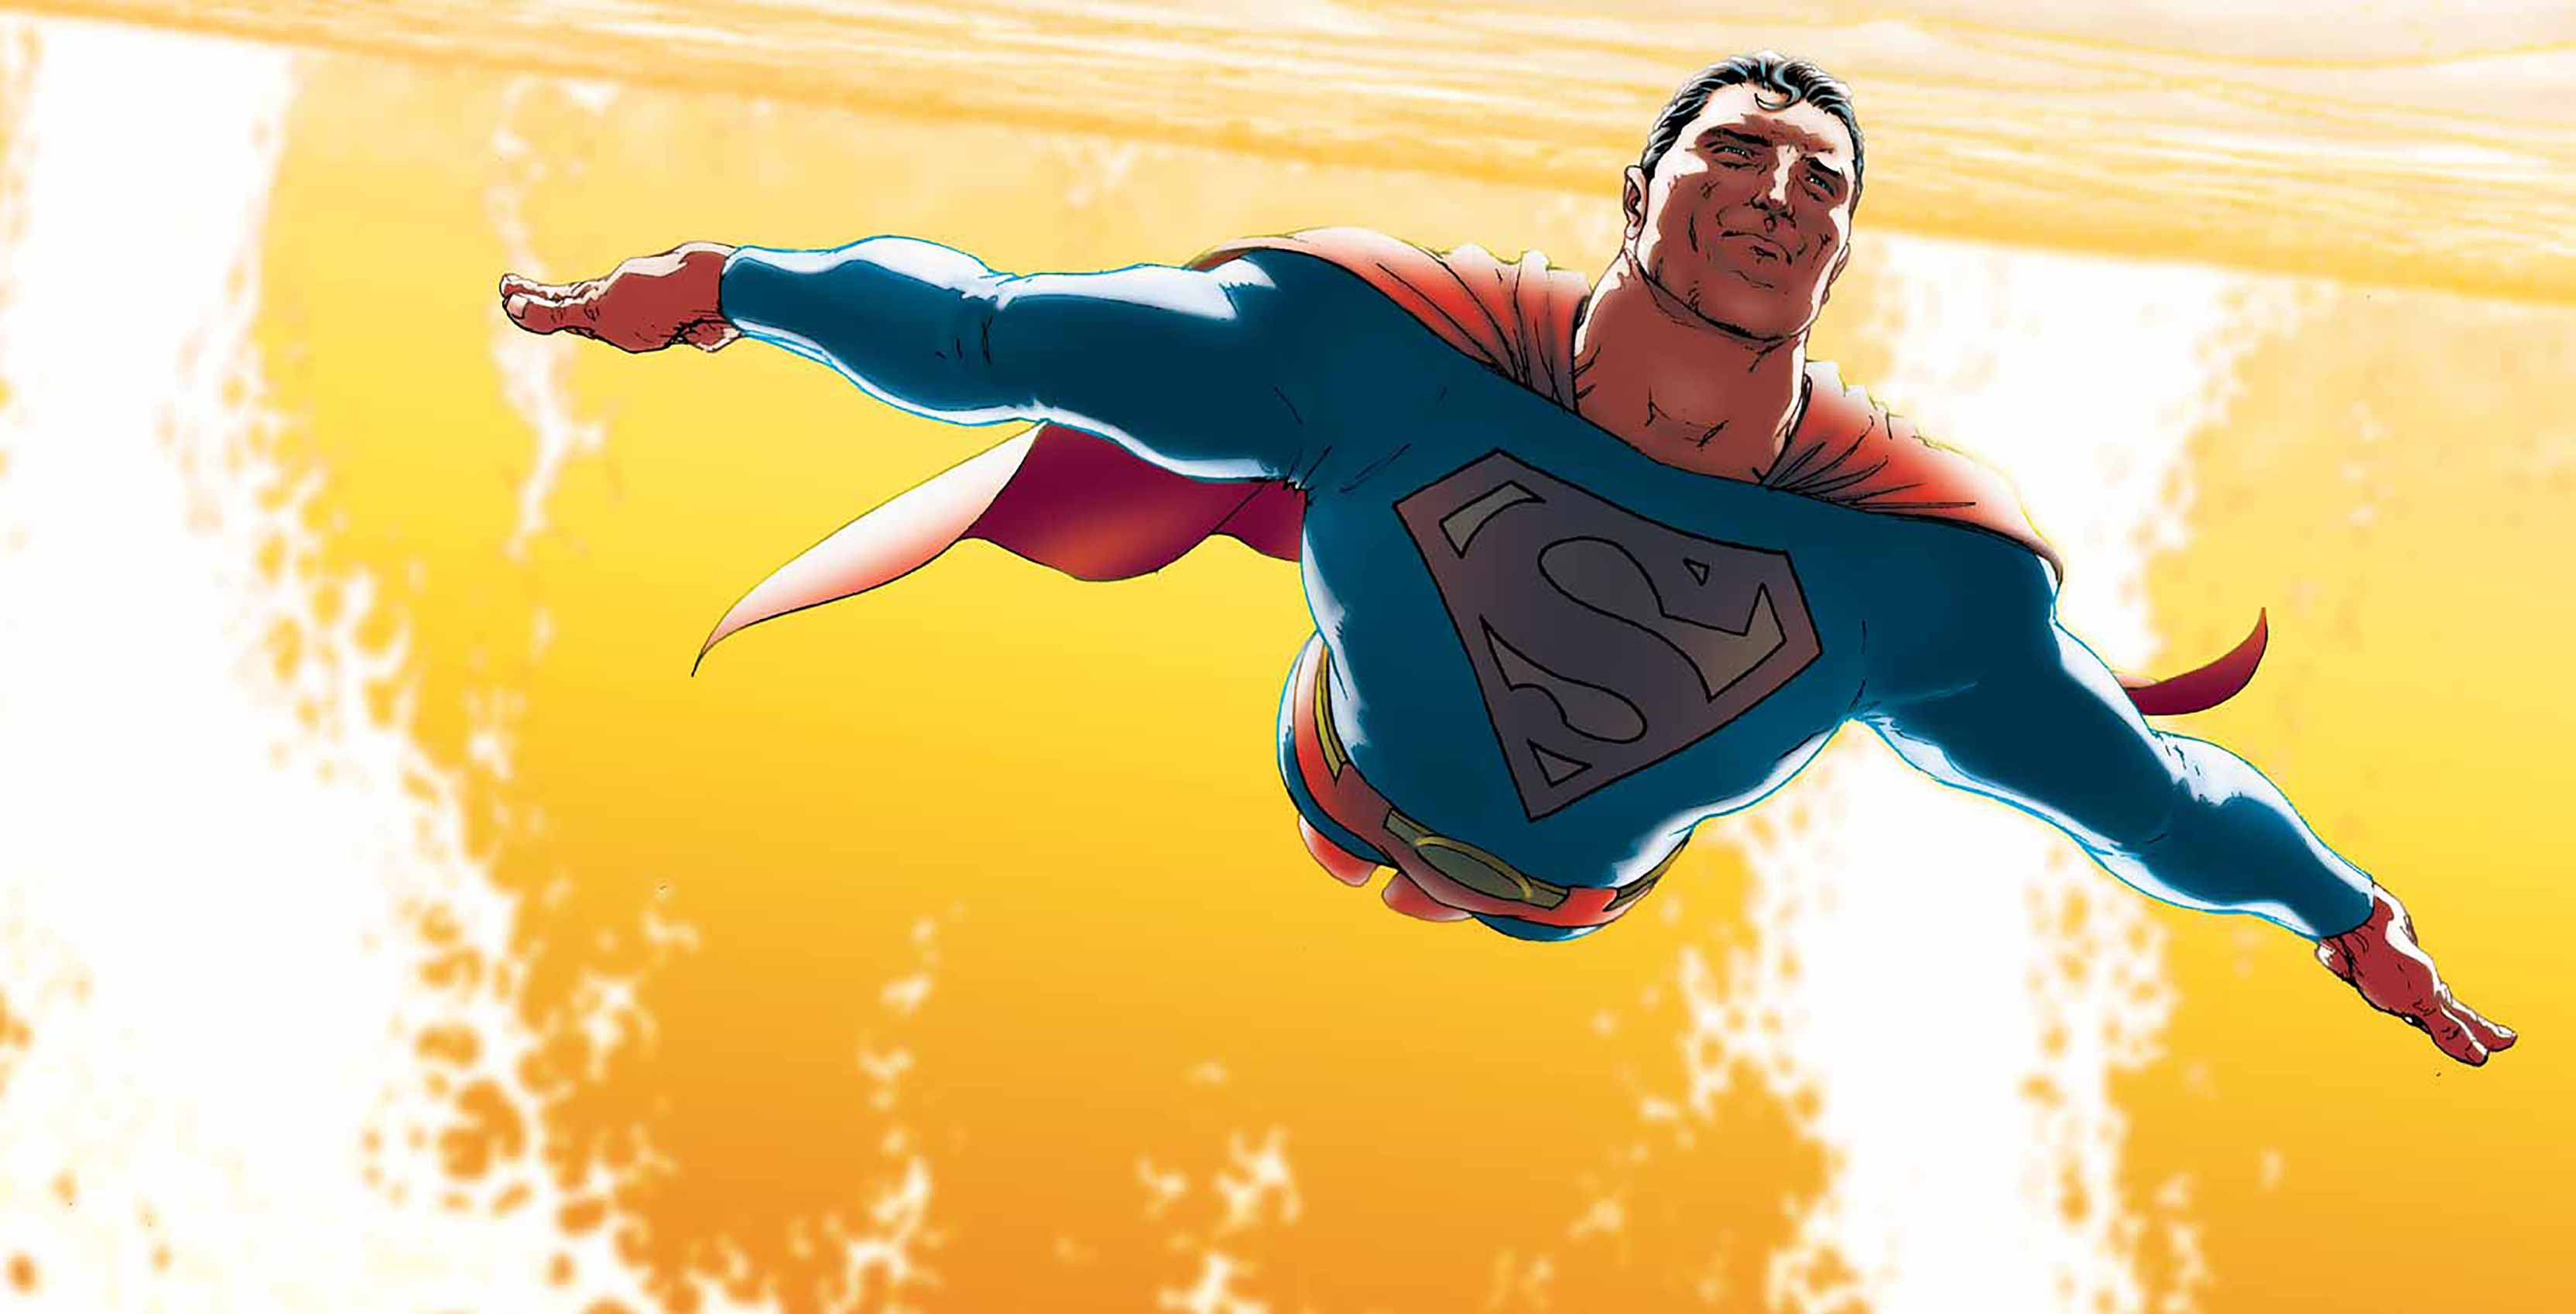 ACTION COMICS #1000 Review: It's Superman Versus Lex Luthor In